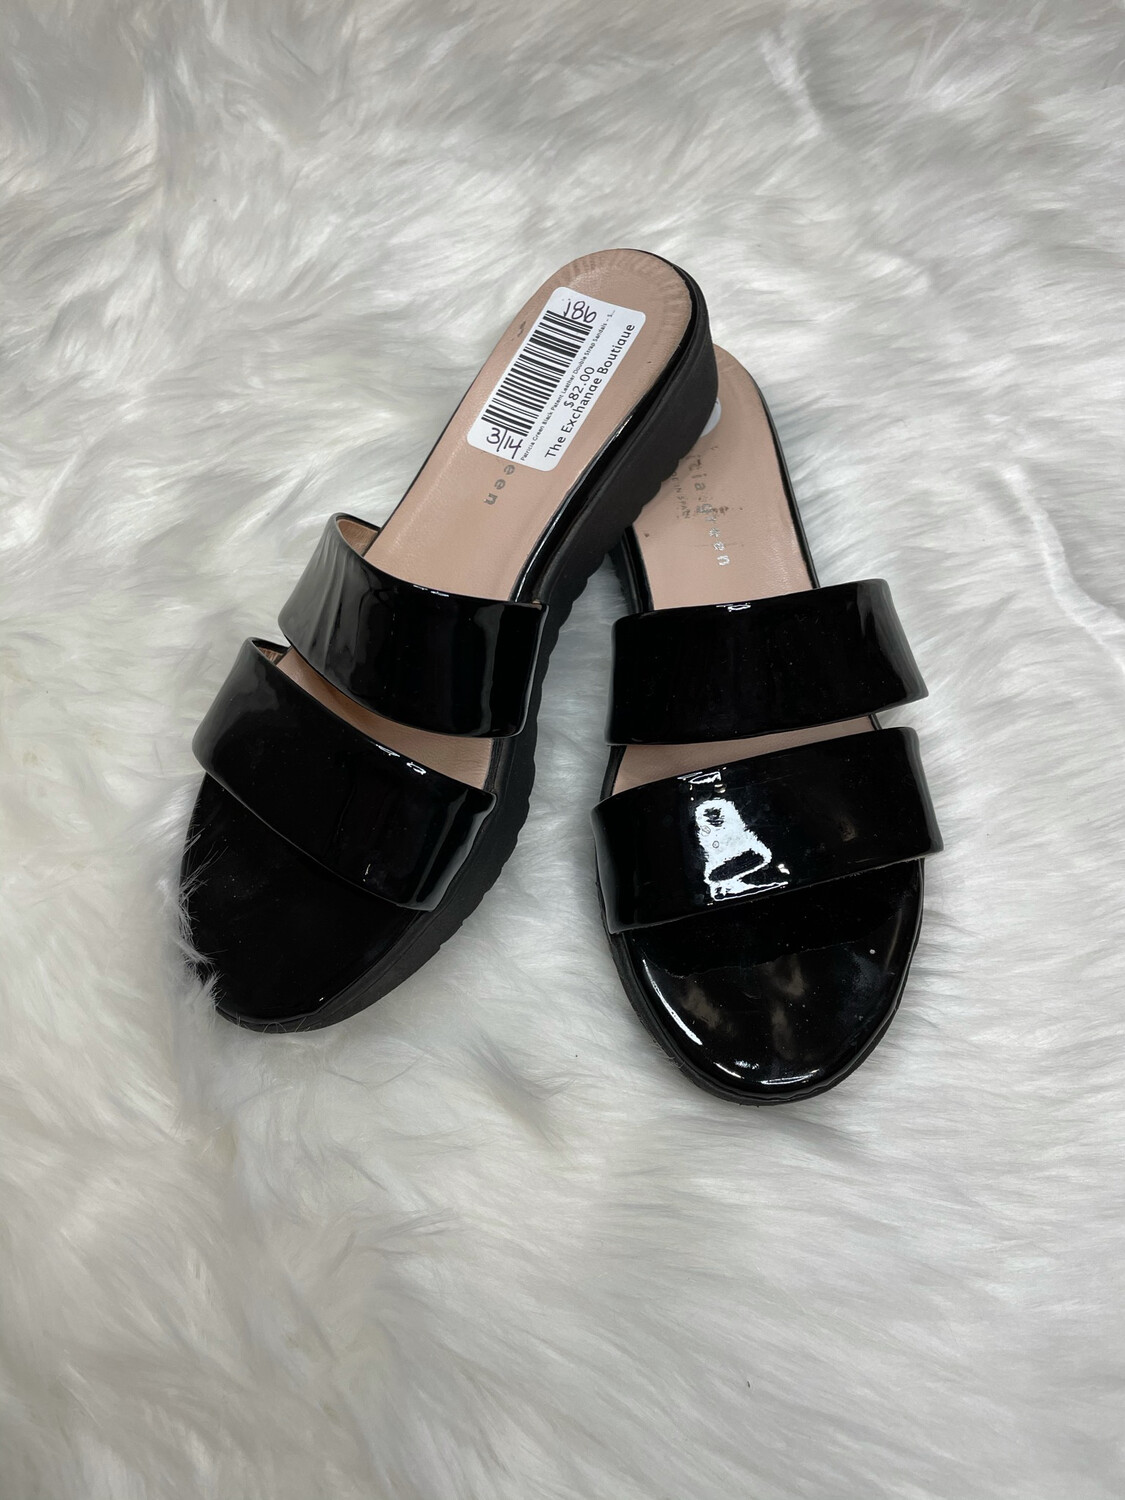 Patricia Green Black Patent Leather Double Strap Sandals - Sized 8.5